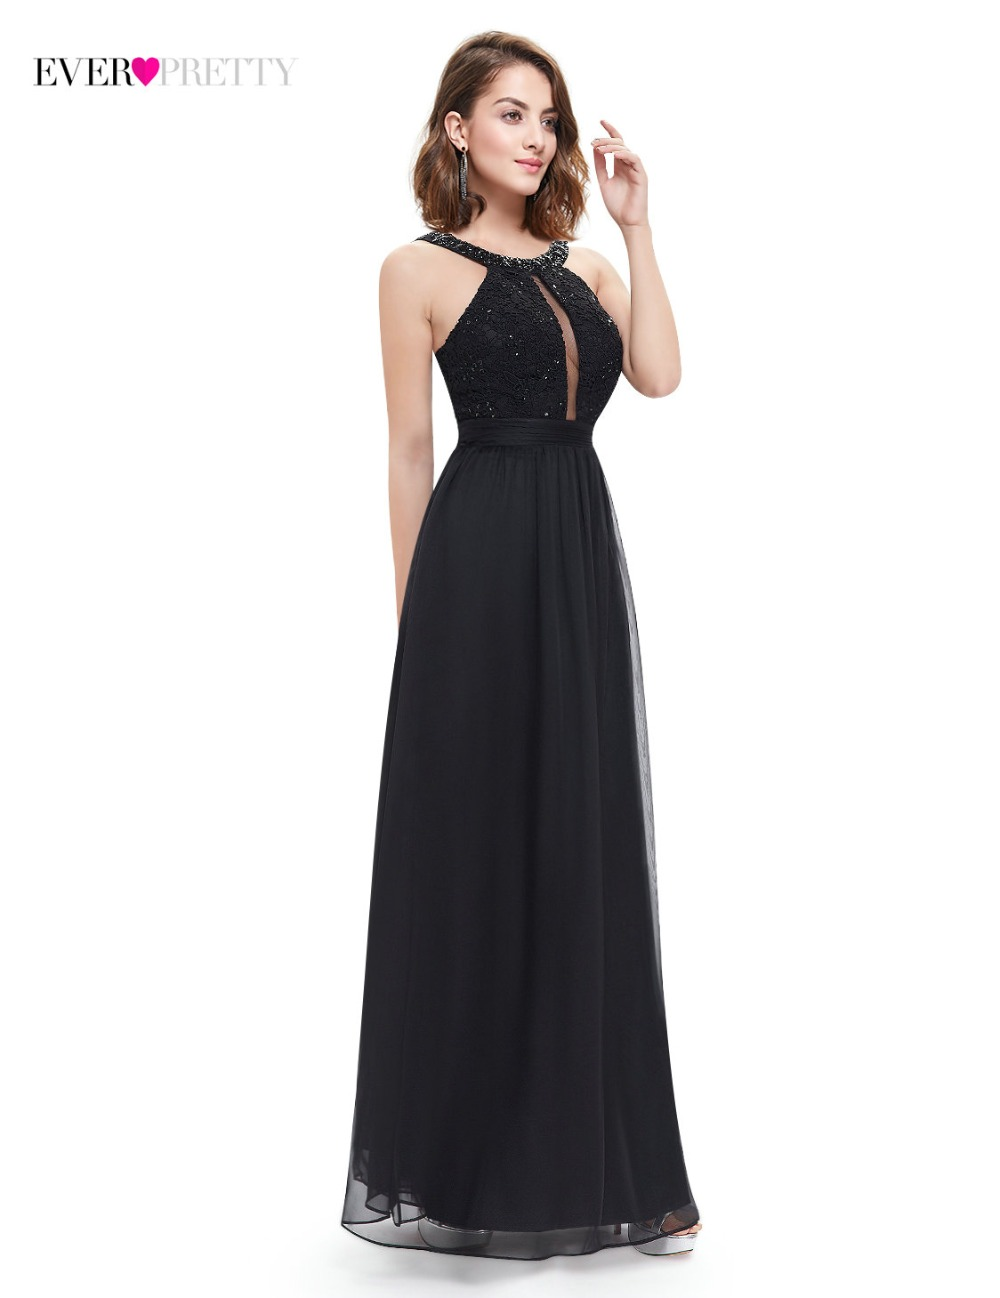 Fast Shipping Black Evening Dresses 2018 Ever Pretty EP08572BK O neck  Spaghetti Straps Floor Length Party Dress Lace Appliques-in Evening Dresses  from ... 942ef76bf9c7